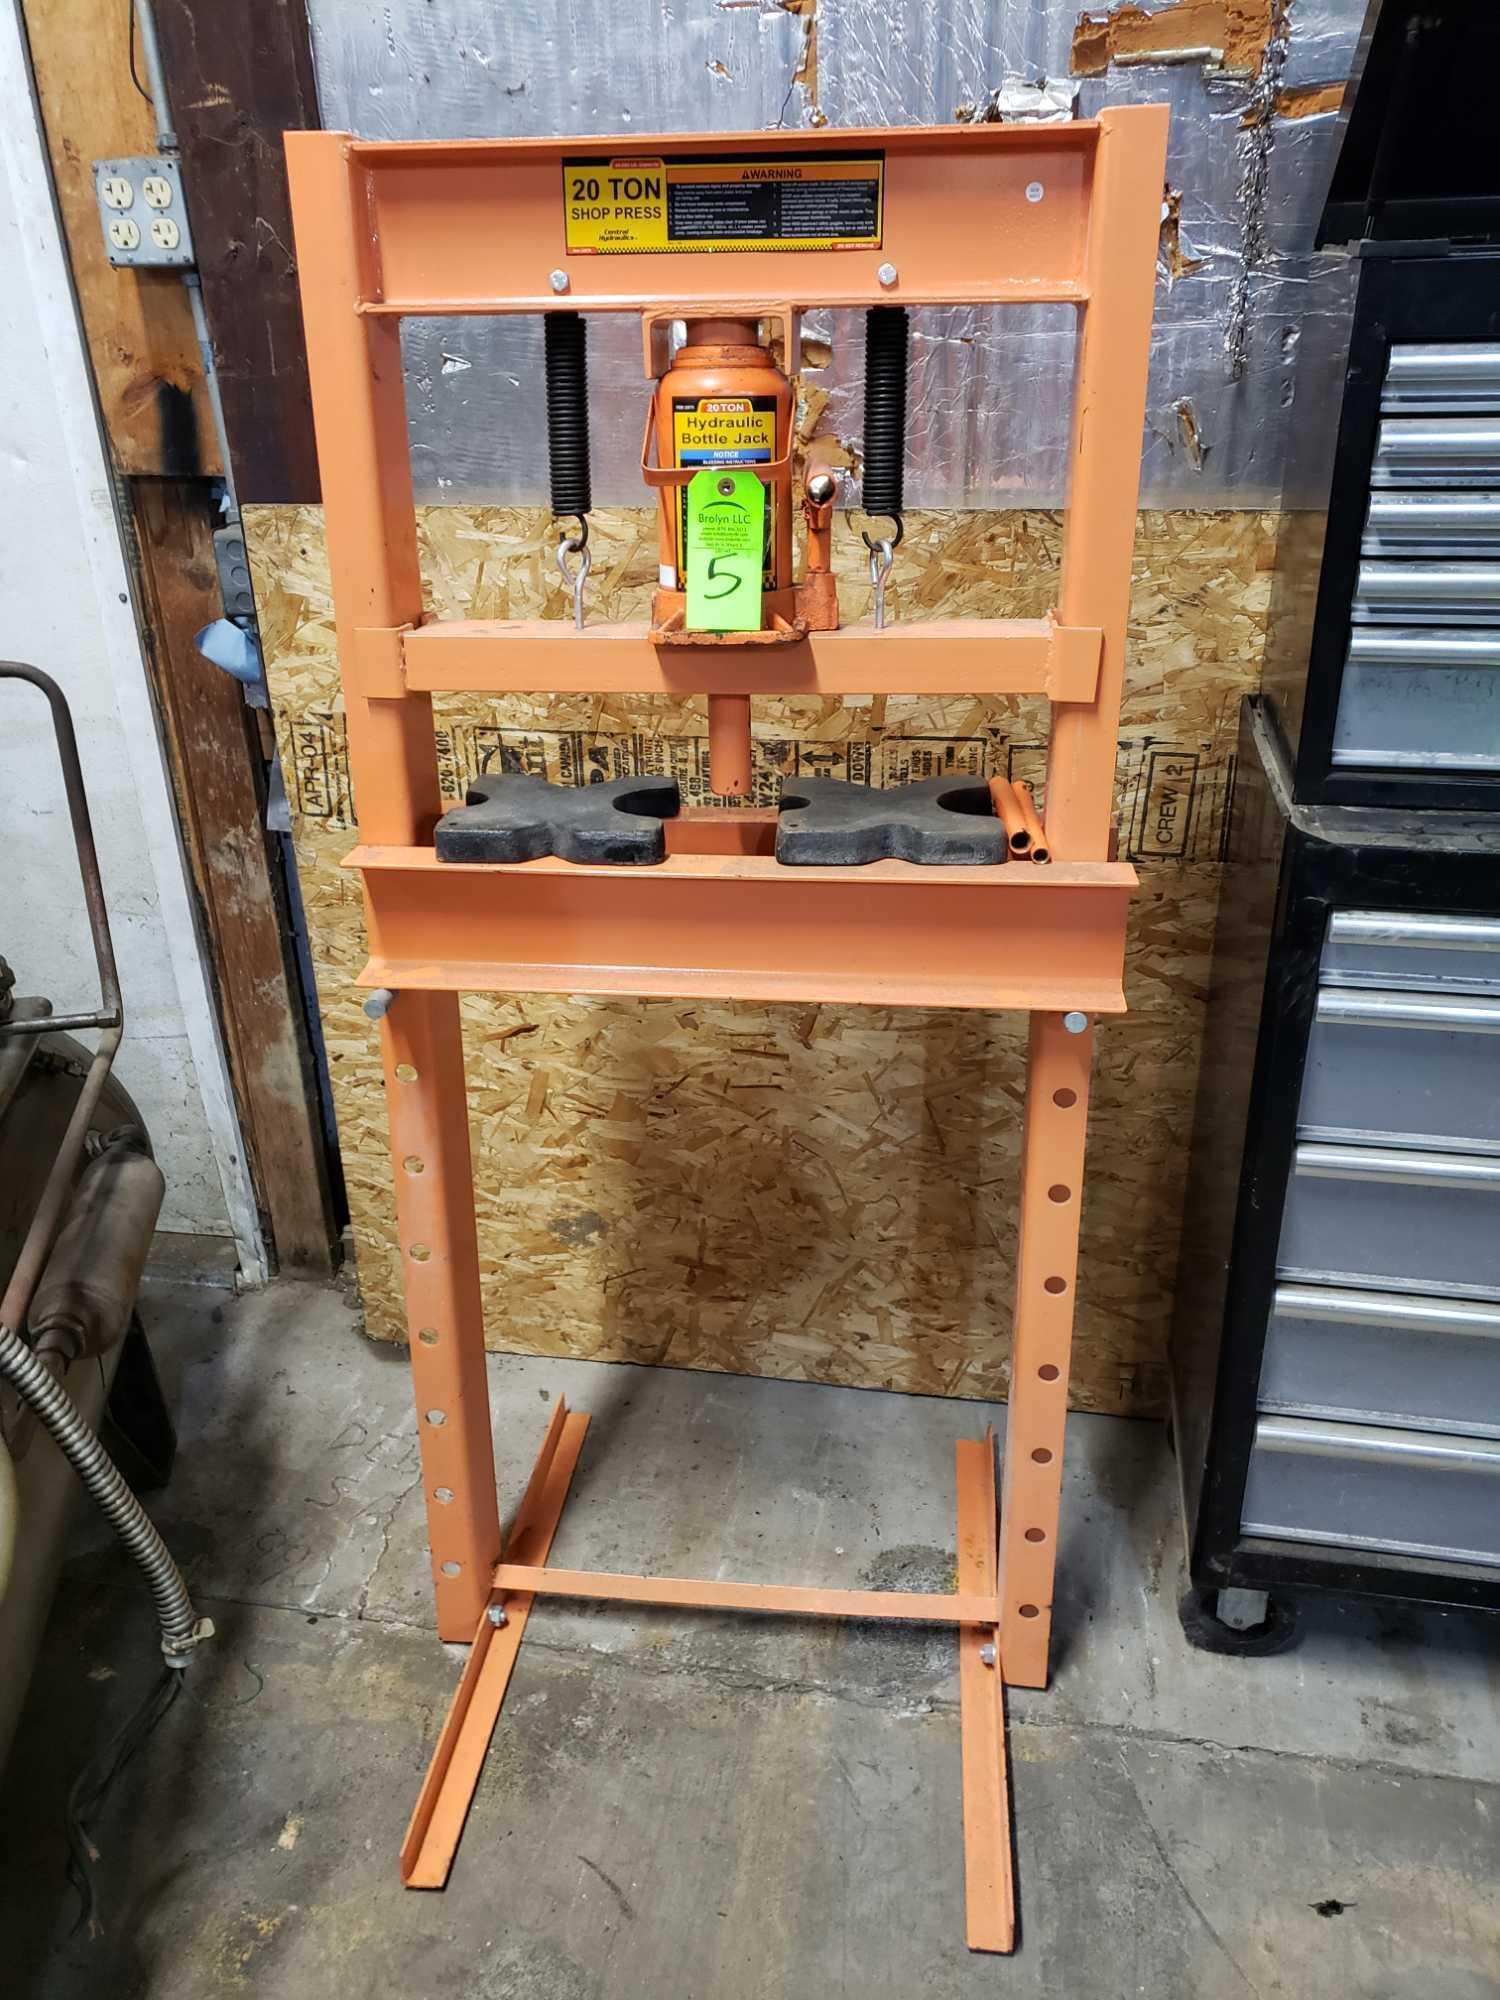 Lot 5 - Central Hydraulics 20 ton shop press